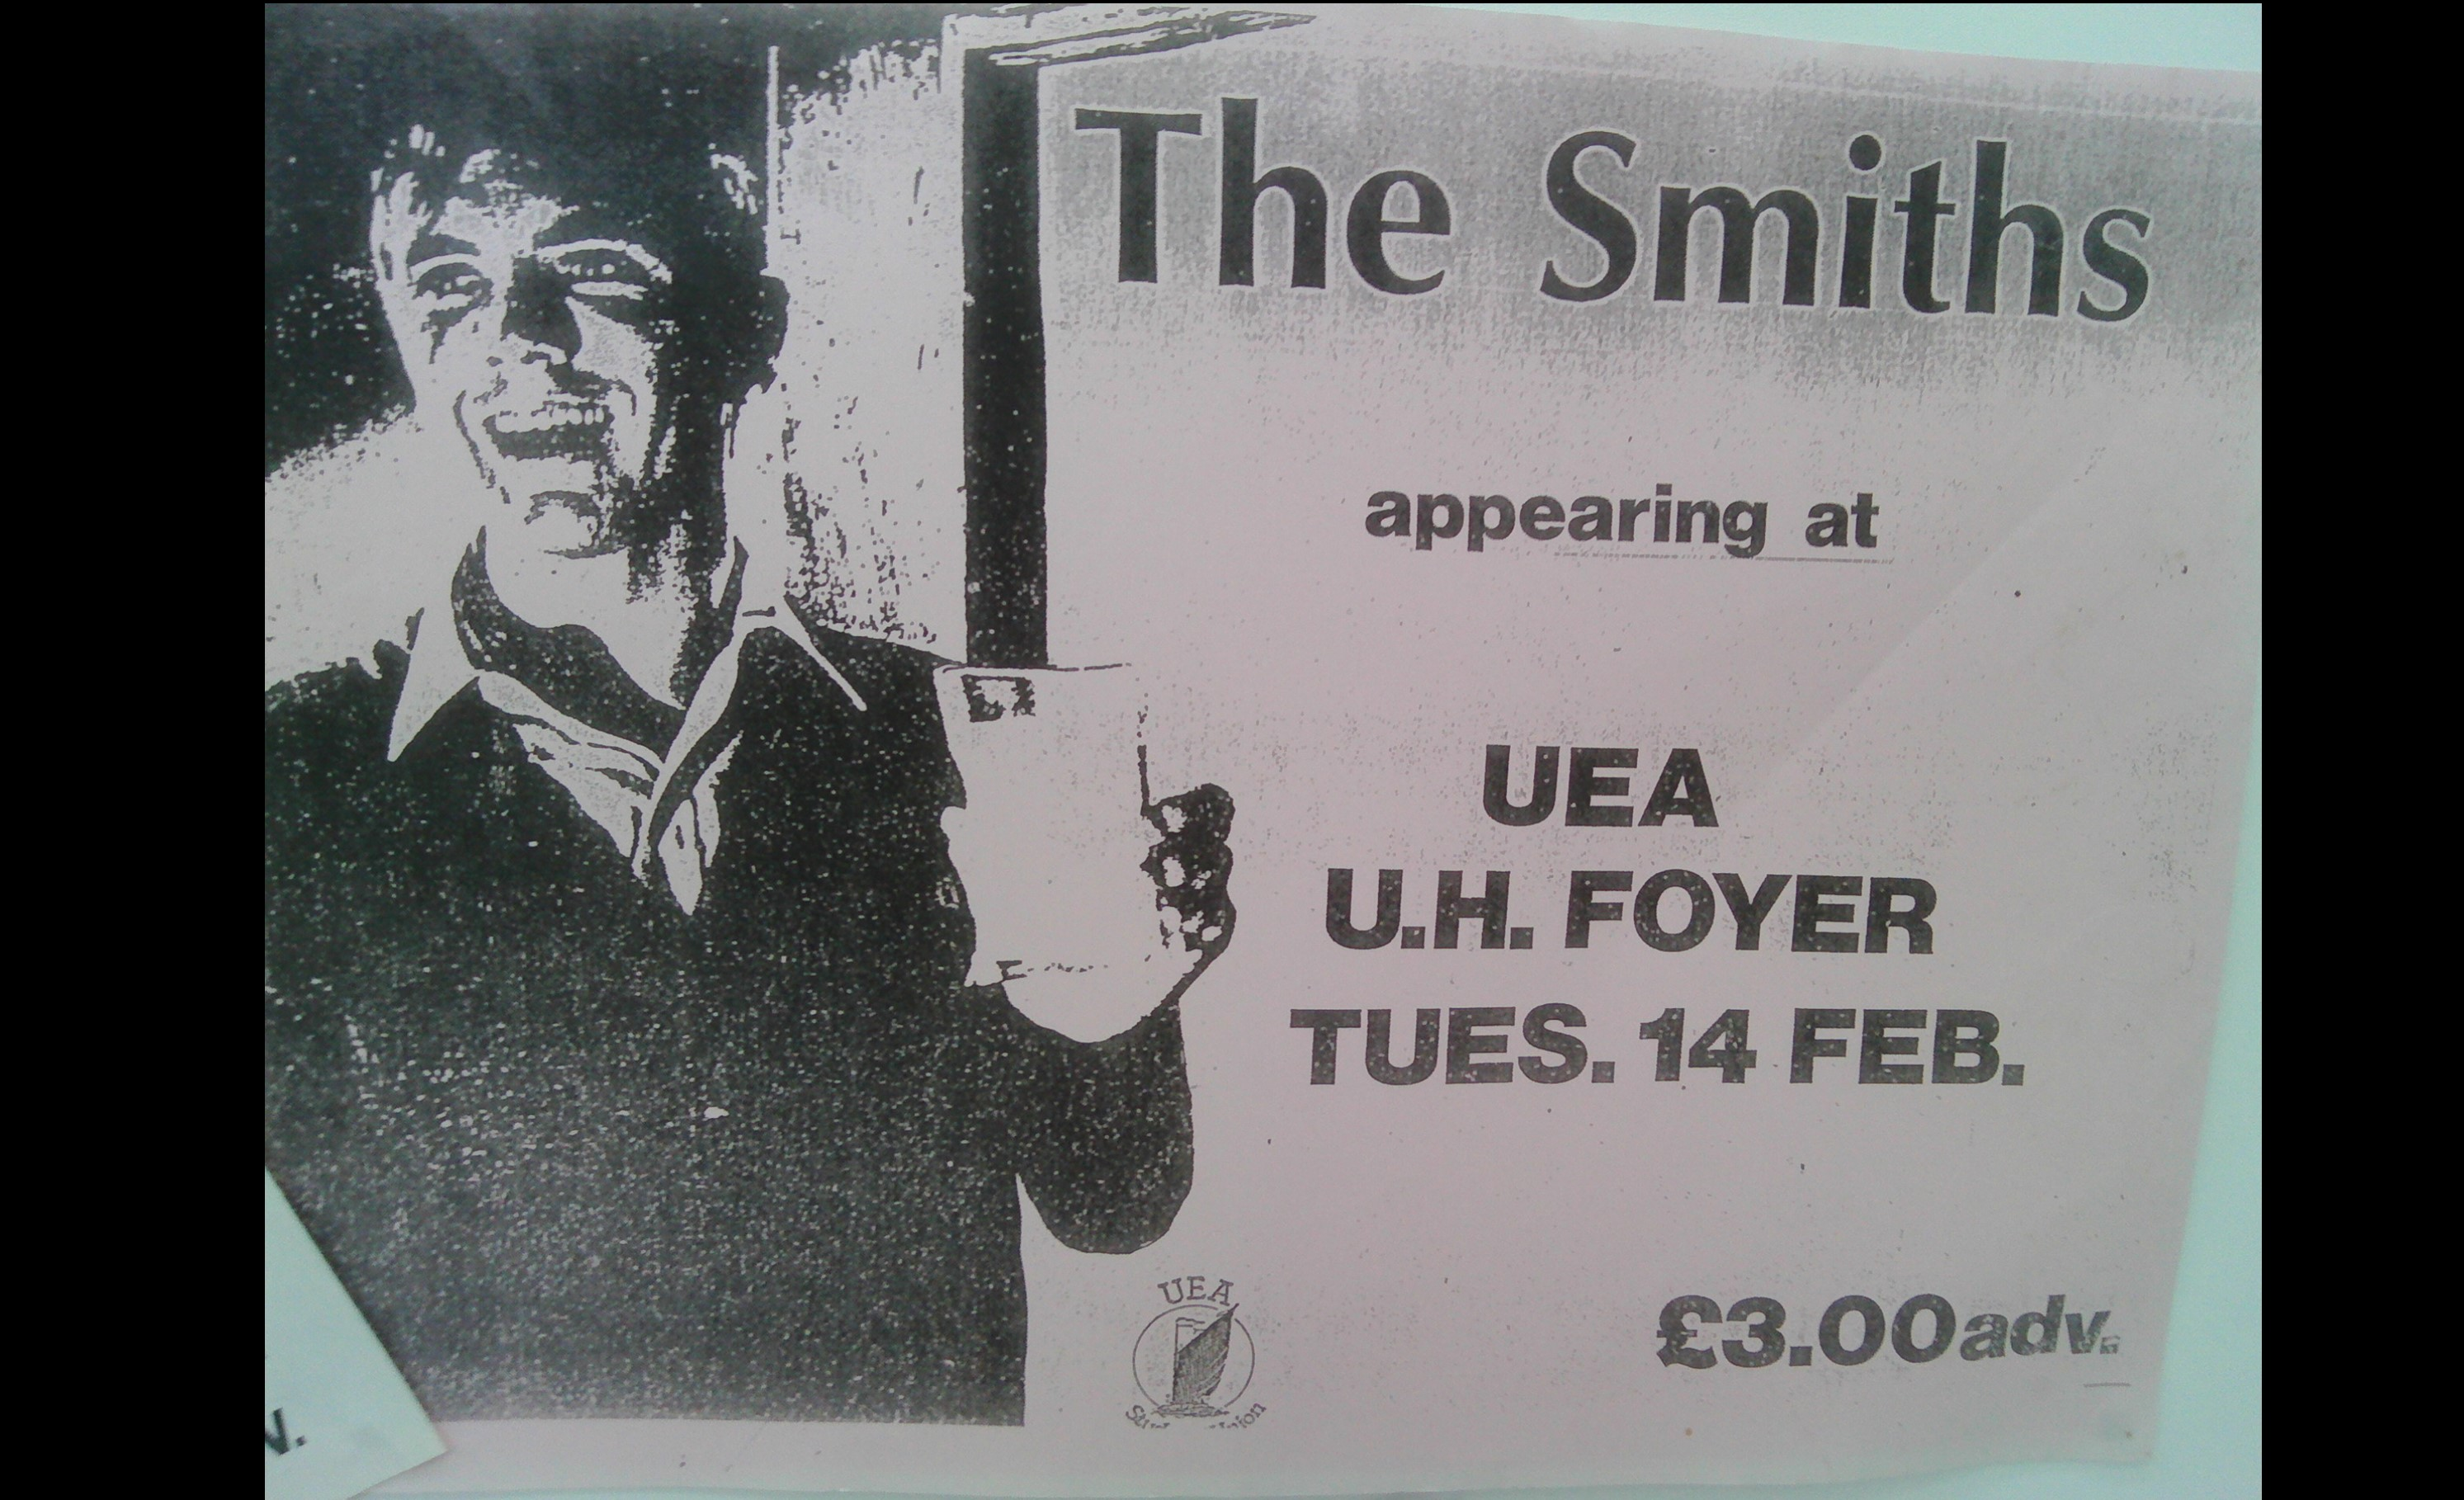 Smiths poster from 1984